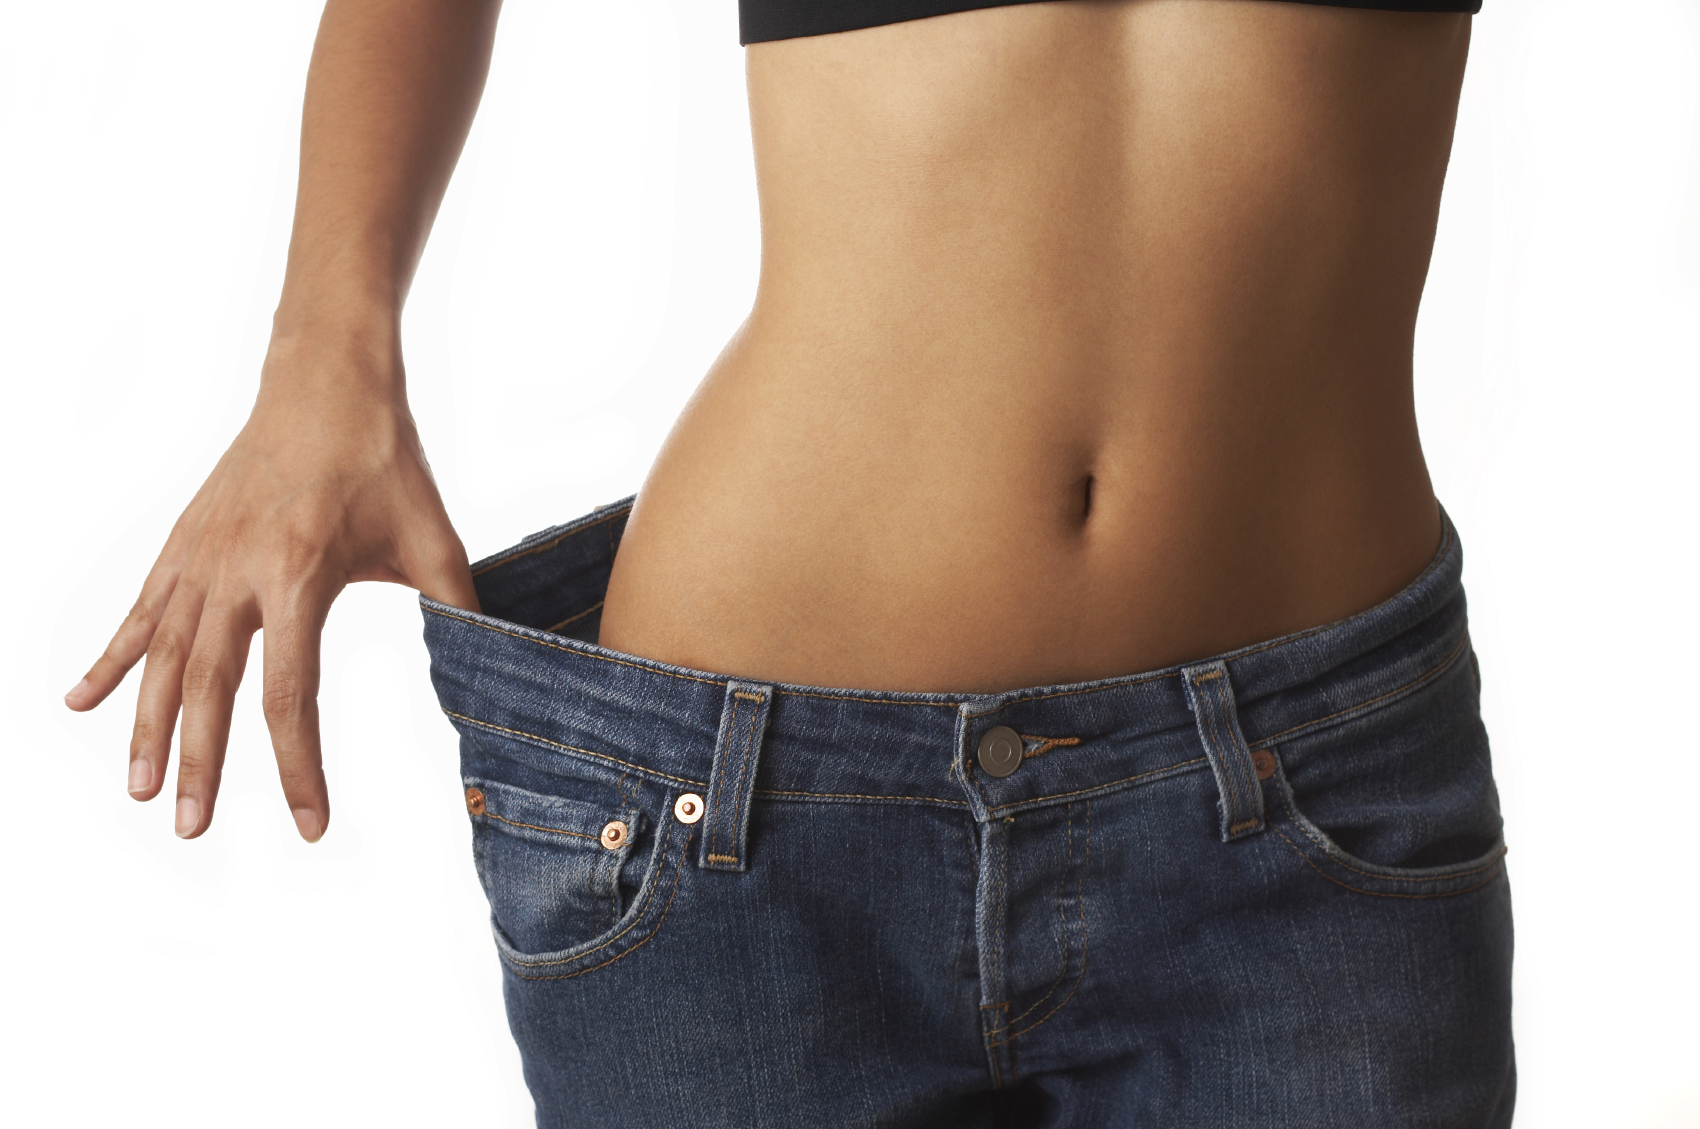 7 Foods That Are PROVEN To Accelerate Weight Loss!